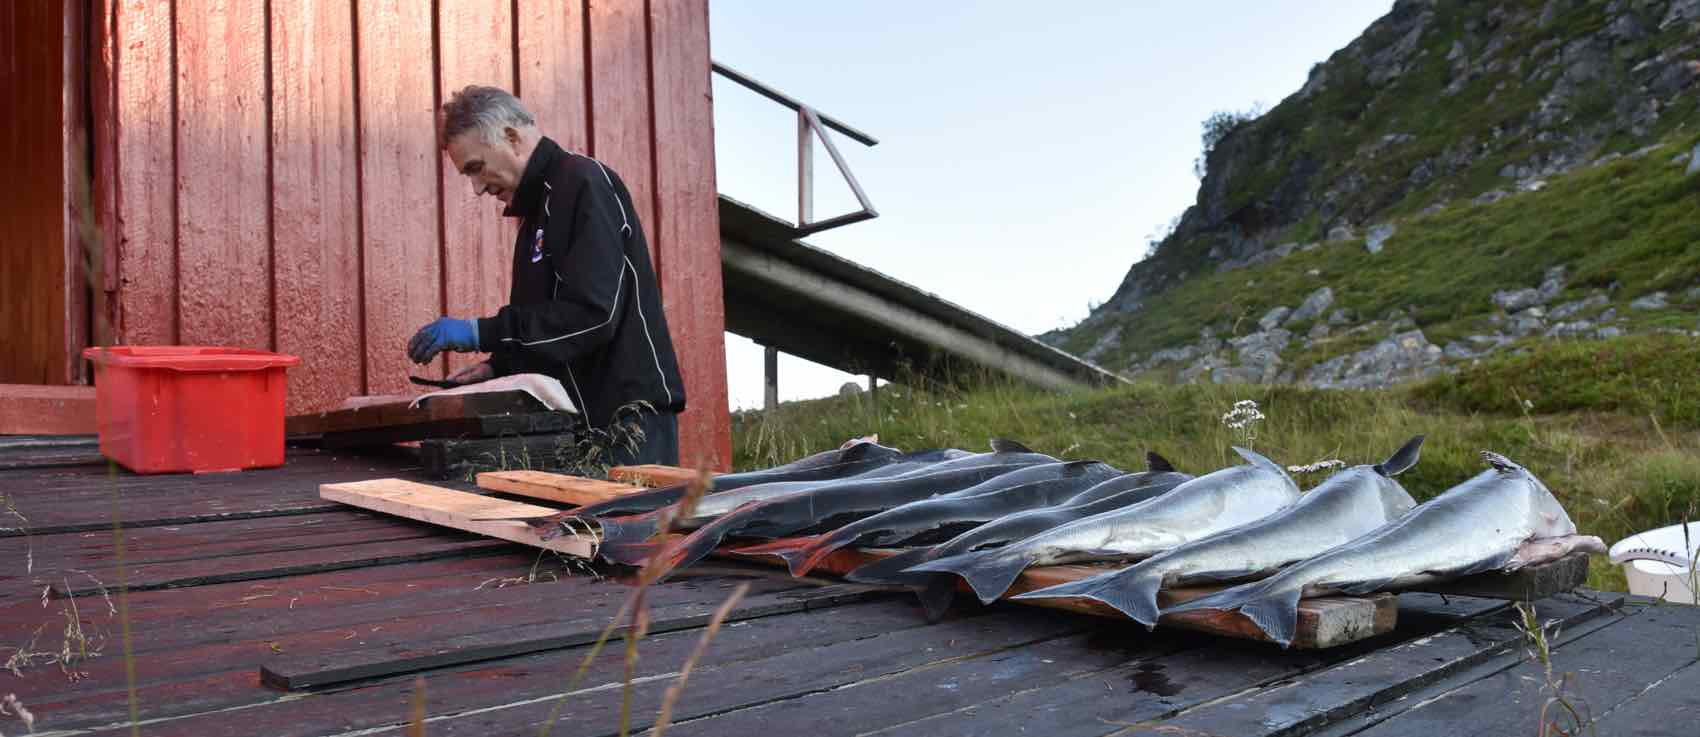 """FISH LUCK: Fishing in the sea, rivers and lakes is part of the summer in this part of Norway. """"Fish is a combination of both luck and skill"""", said bar-keeper Ole Kristian."""